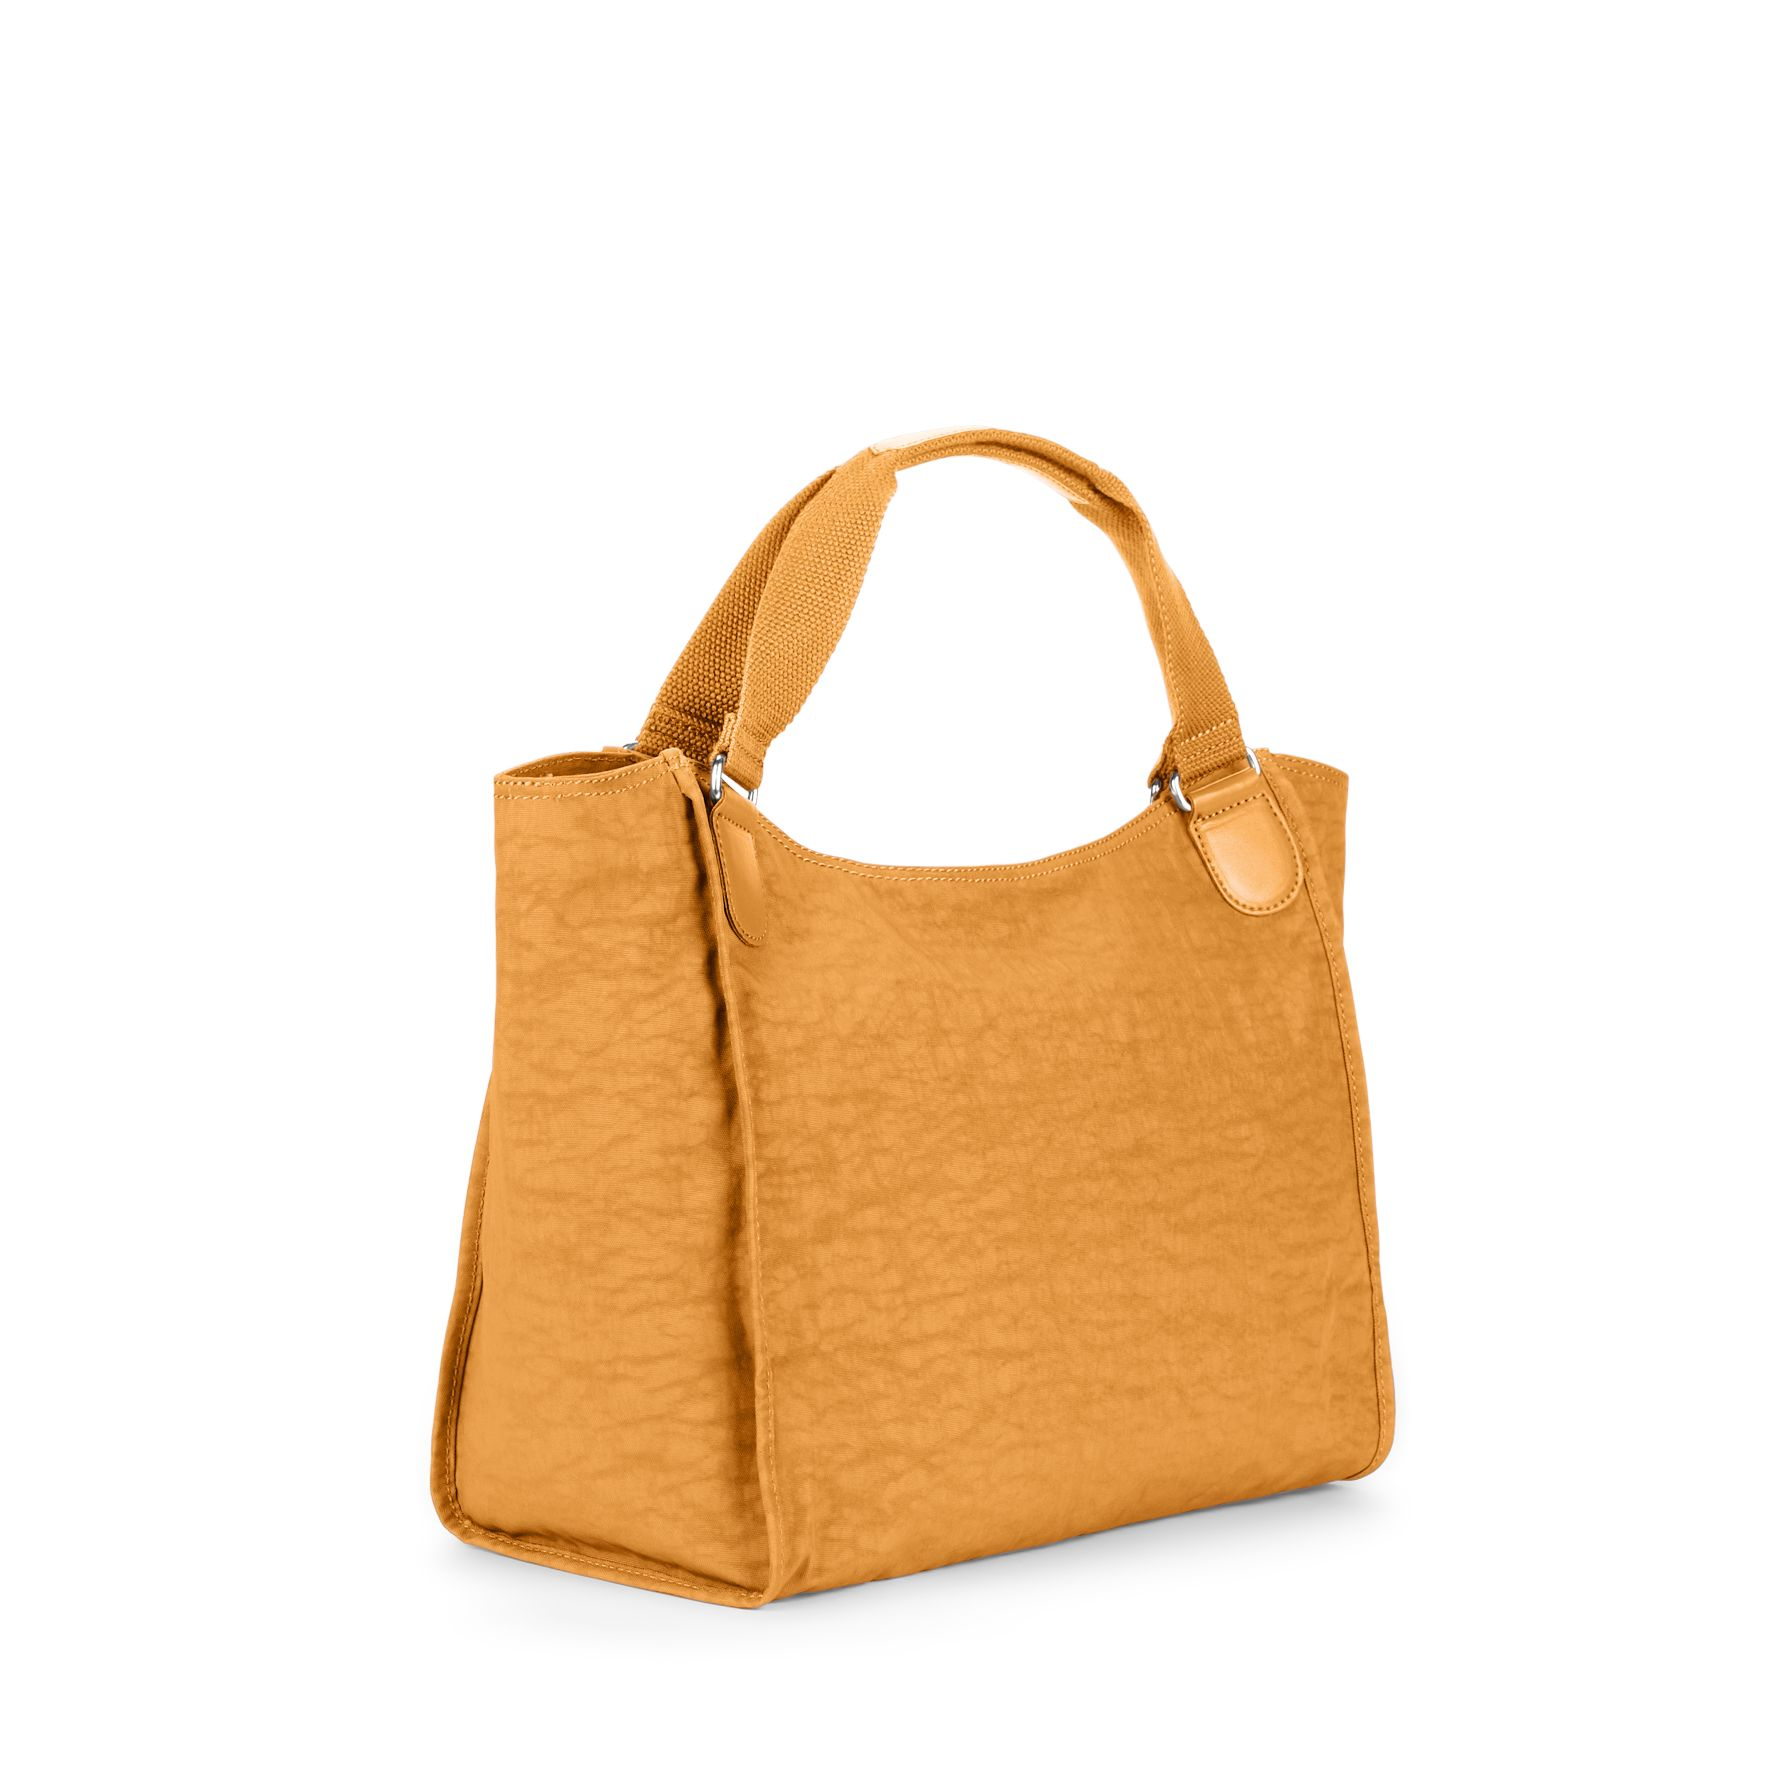 Sarande shoulder bag